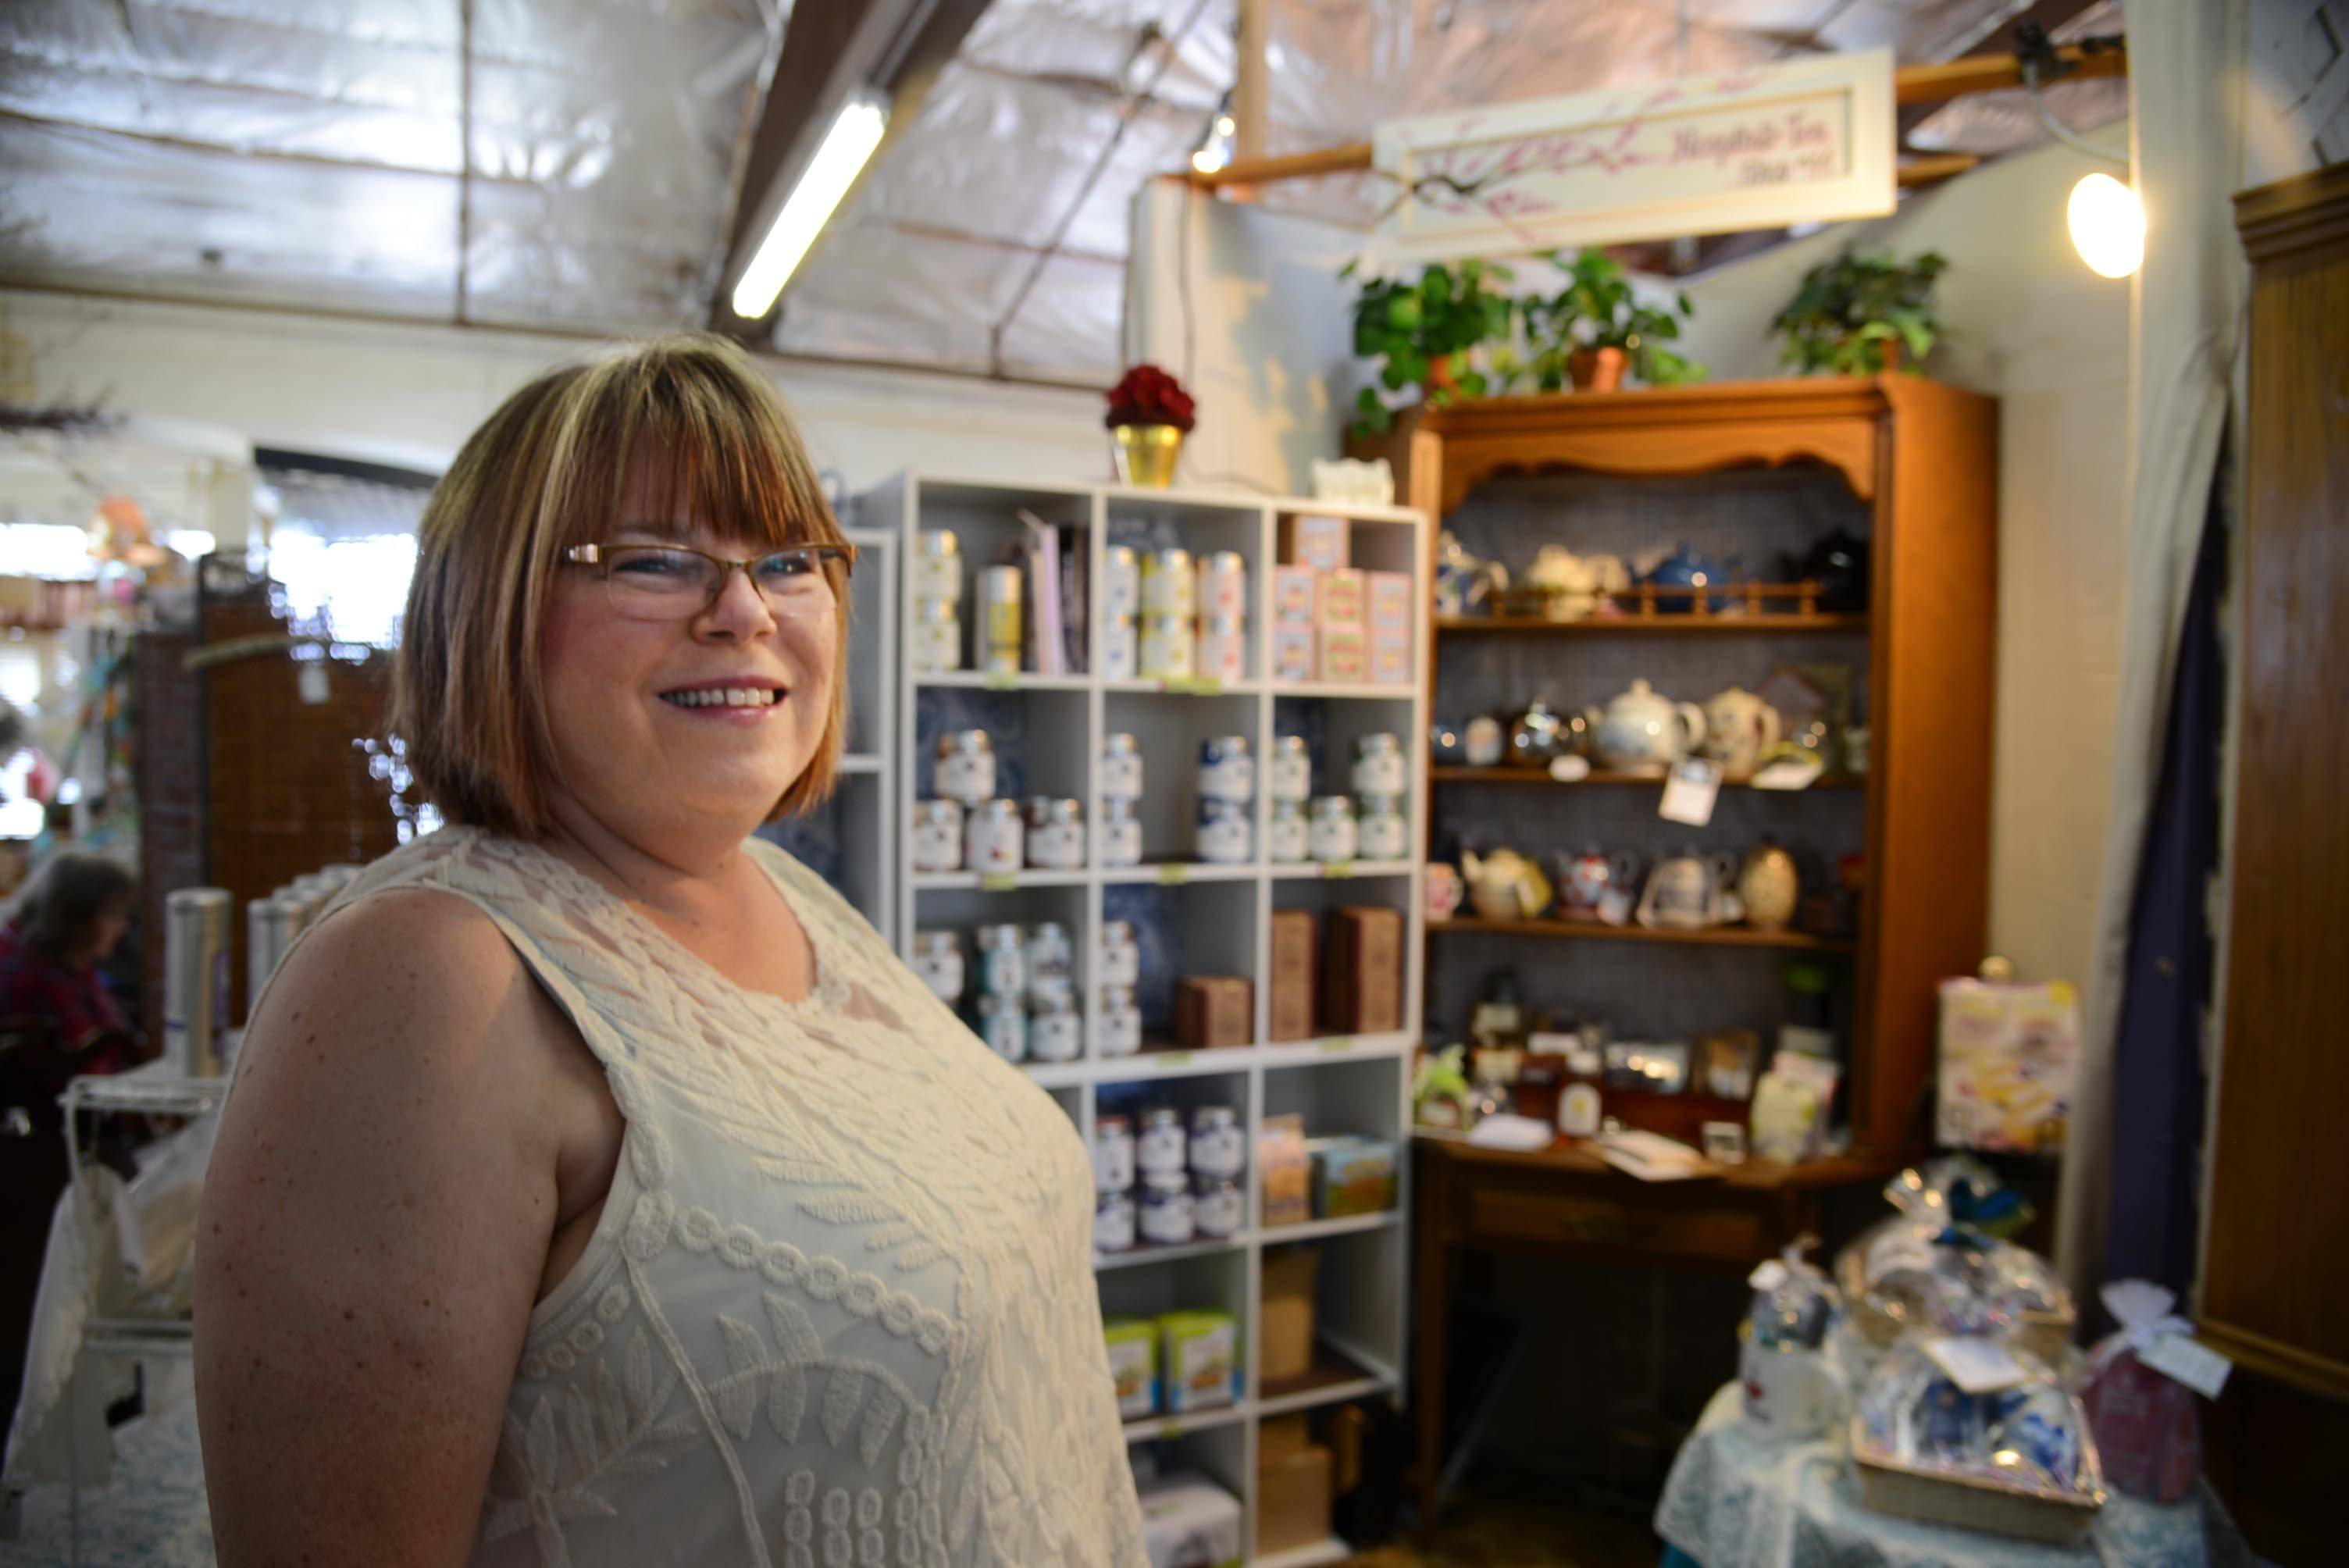 Kay Morrisroe, owner of HospitaliTea at State Street Market Shops in Elgin, took part in the first Elgin Area Small Business Academy. A second one starts in January.